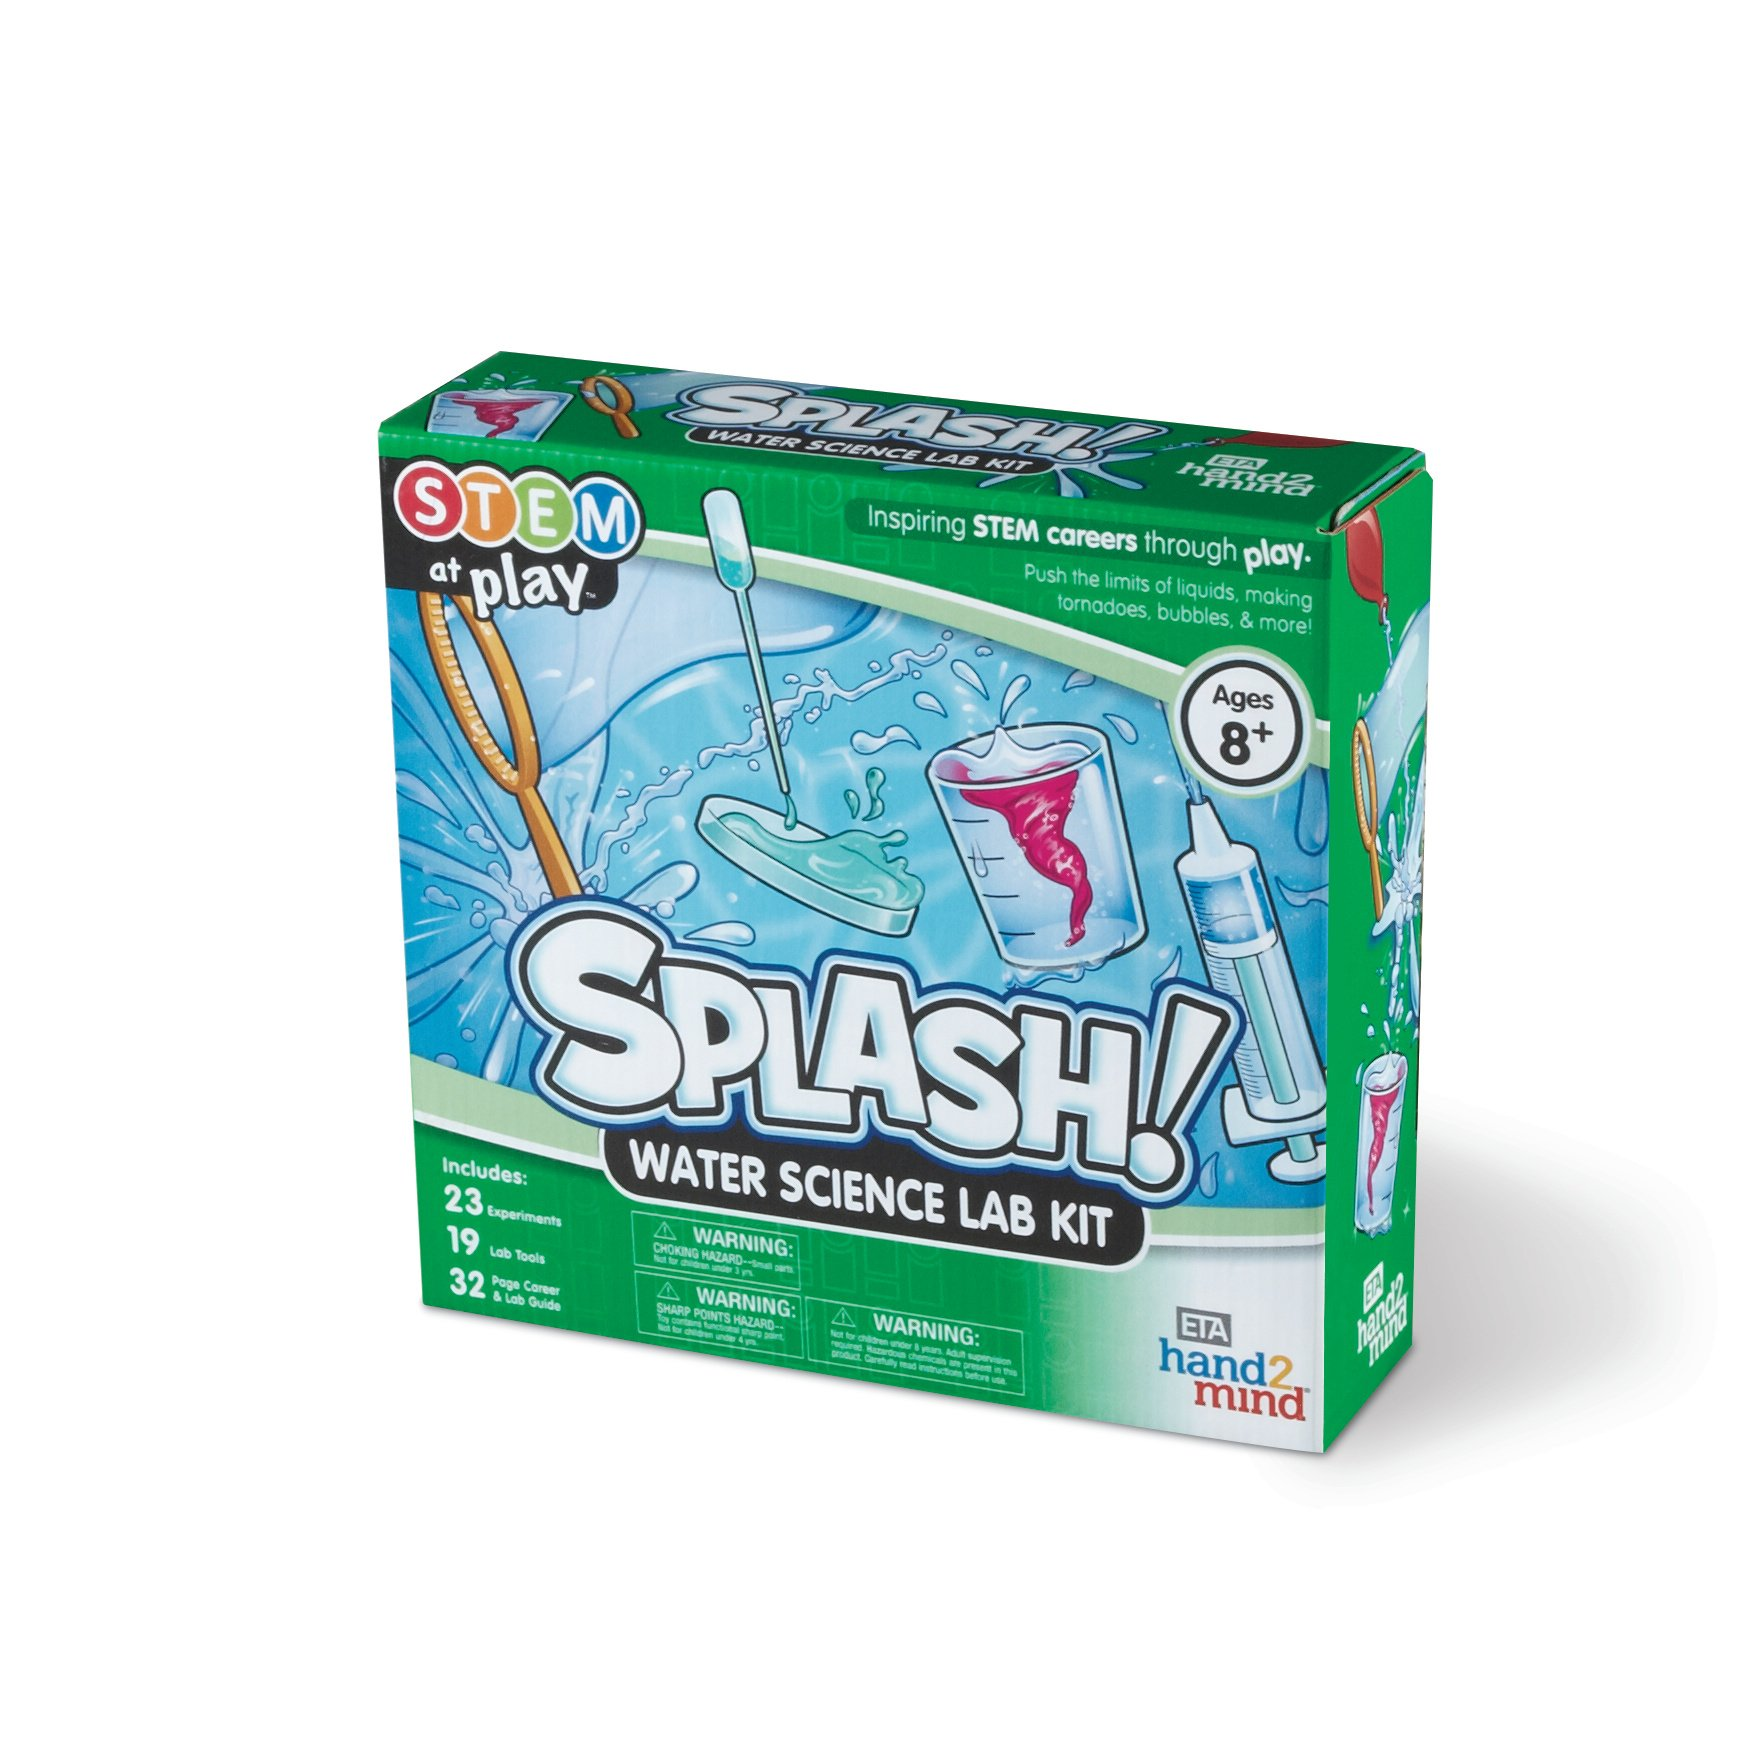 ETA hand2 mind Splash! Water Science Kit, 23 STEM Activities for Kids, Making Tornadoes, Bubbles Experiments